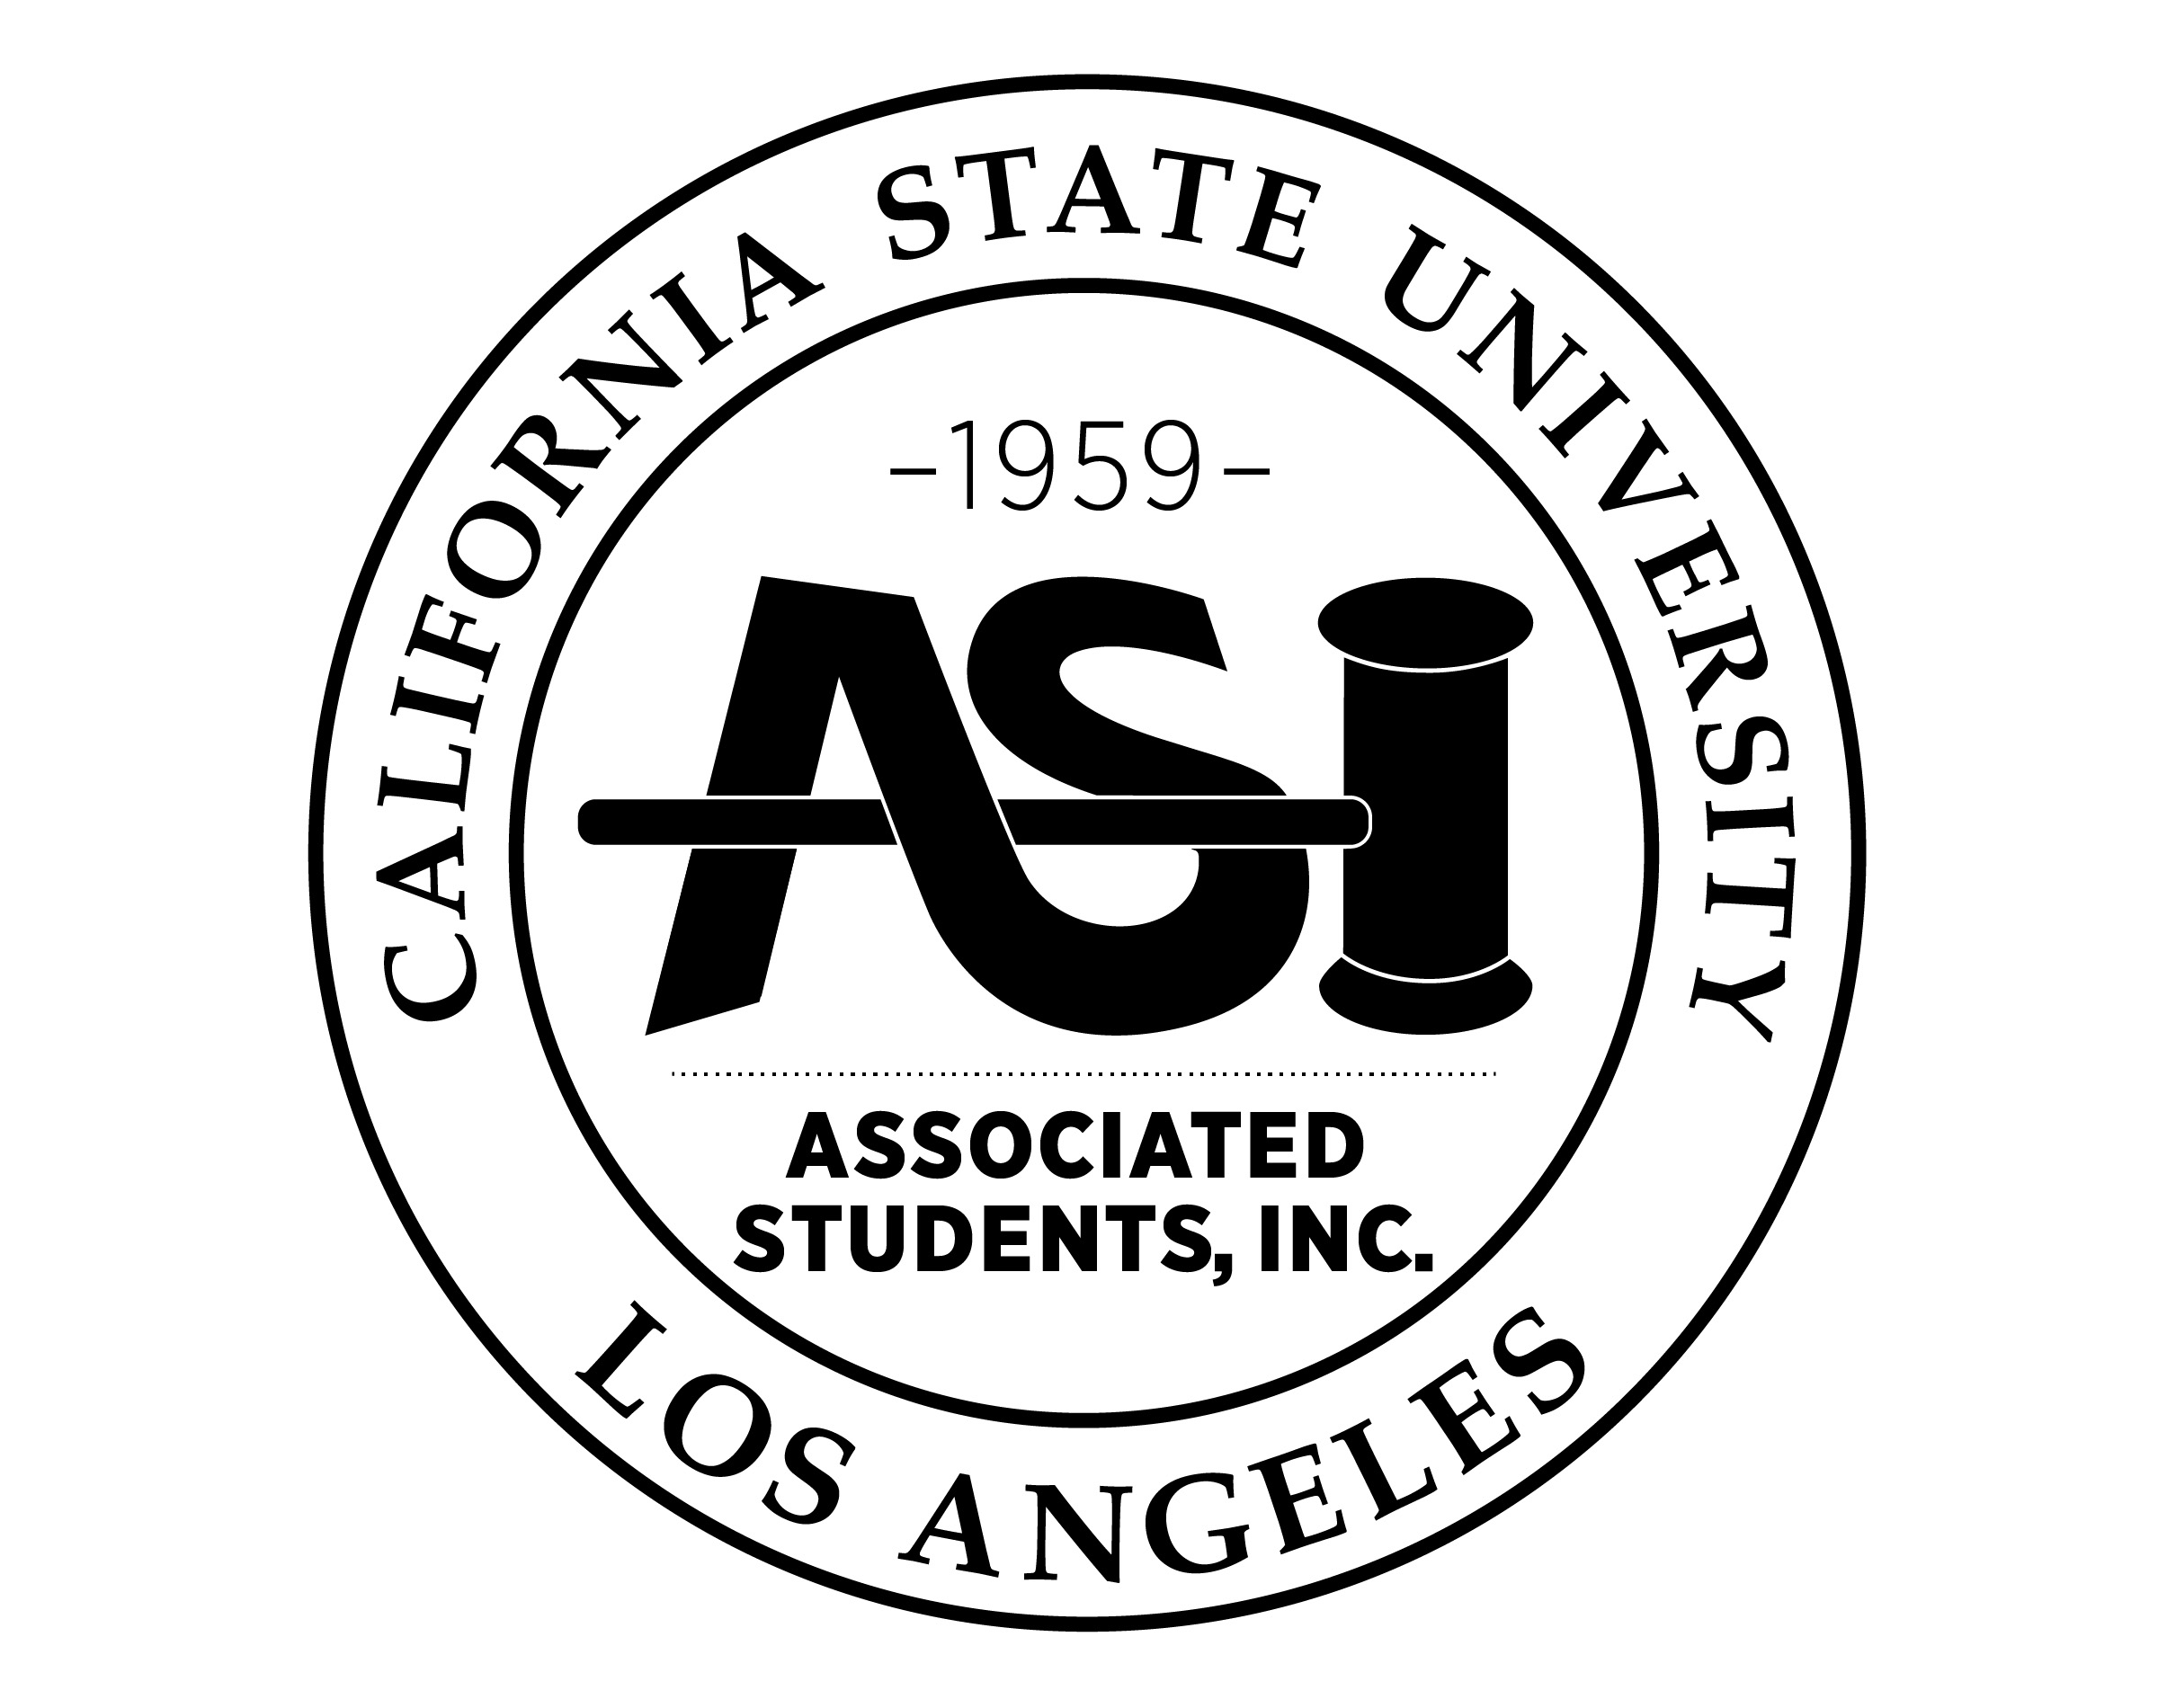 cal state los angeles thesis Communities within csula digital repository cal state la faculty publications [24] special collections & archives [1364] theses & dissertations [2675].